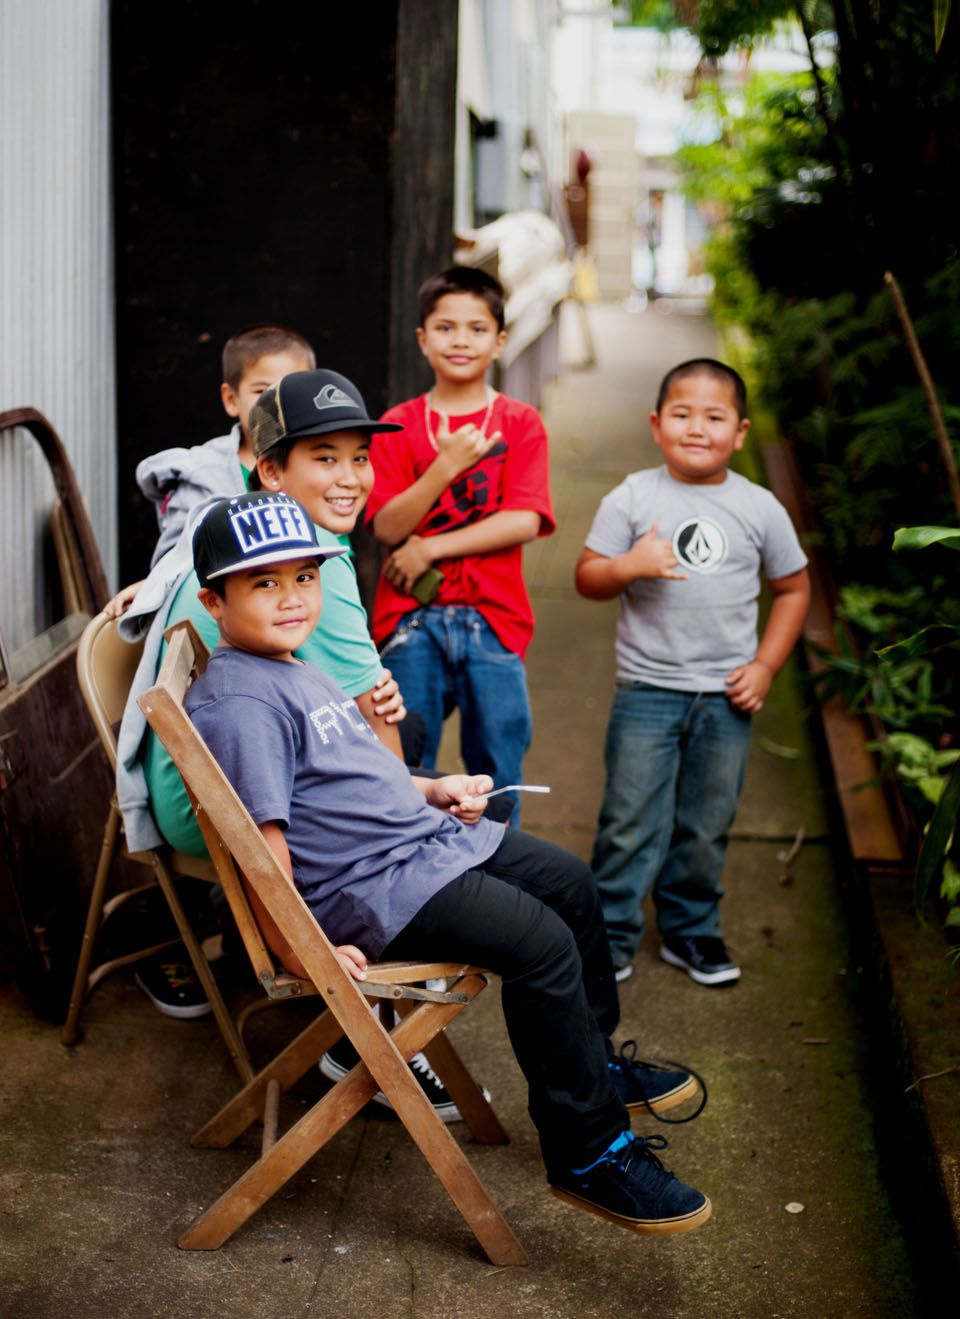 Kiddos hanging outside the People's Theater in Honoka'a, Hawai'i. Photographed for a larger project for Hana Hou! Magazine.